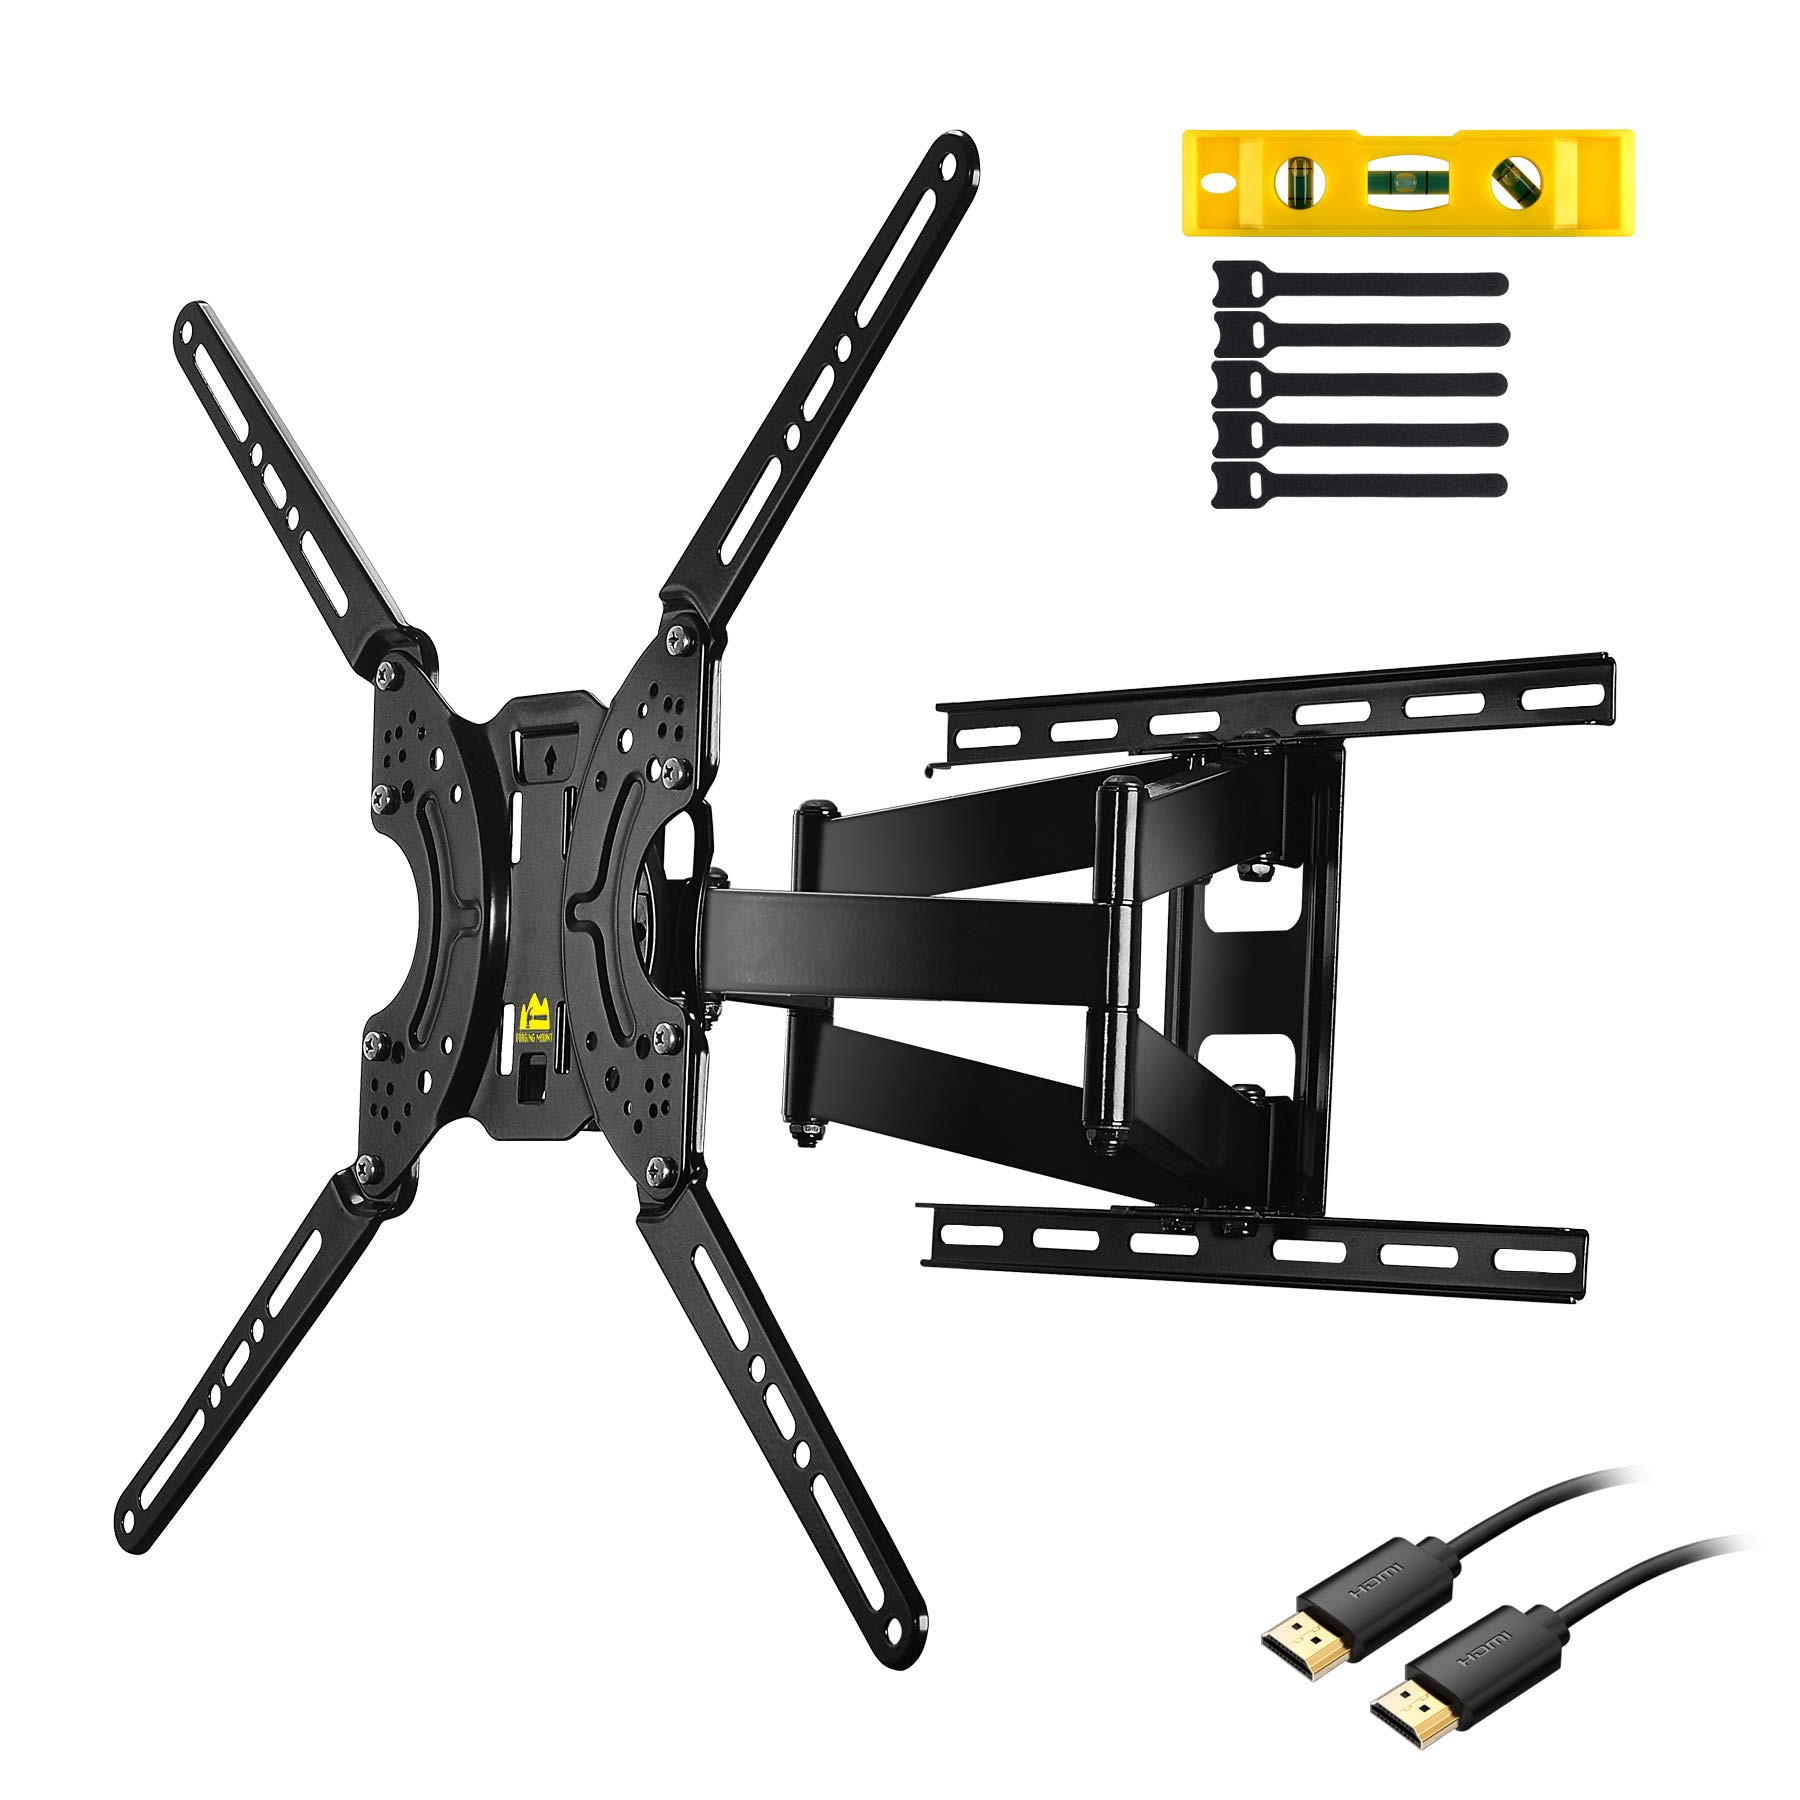 FORGING MOUNT Full Motion TV Wall Mount Bracket Dual Articulating Arms for Most 37-70 inch LED,LCD,OLED,Plasma Screen TVs up to 132LBS VESA 600X400mm-16.5'' Extension FM9380-B